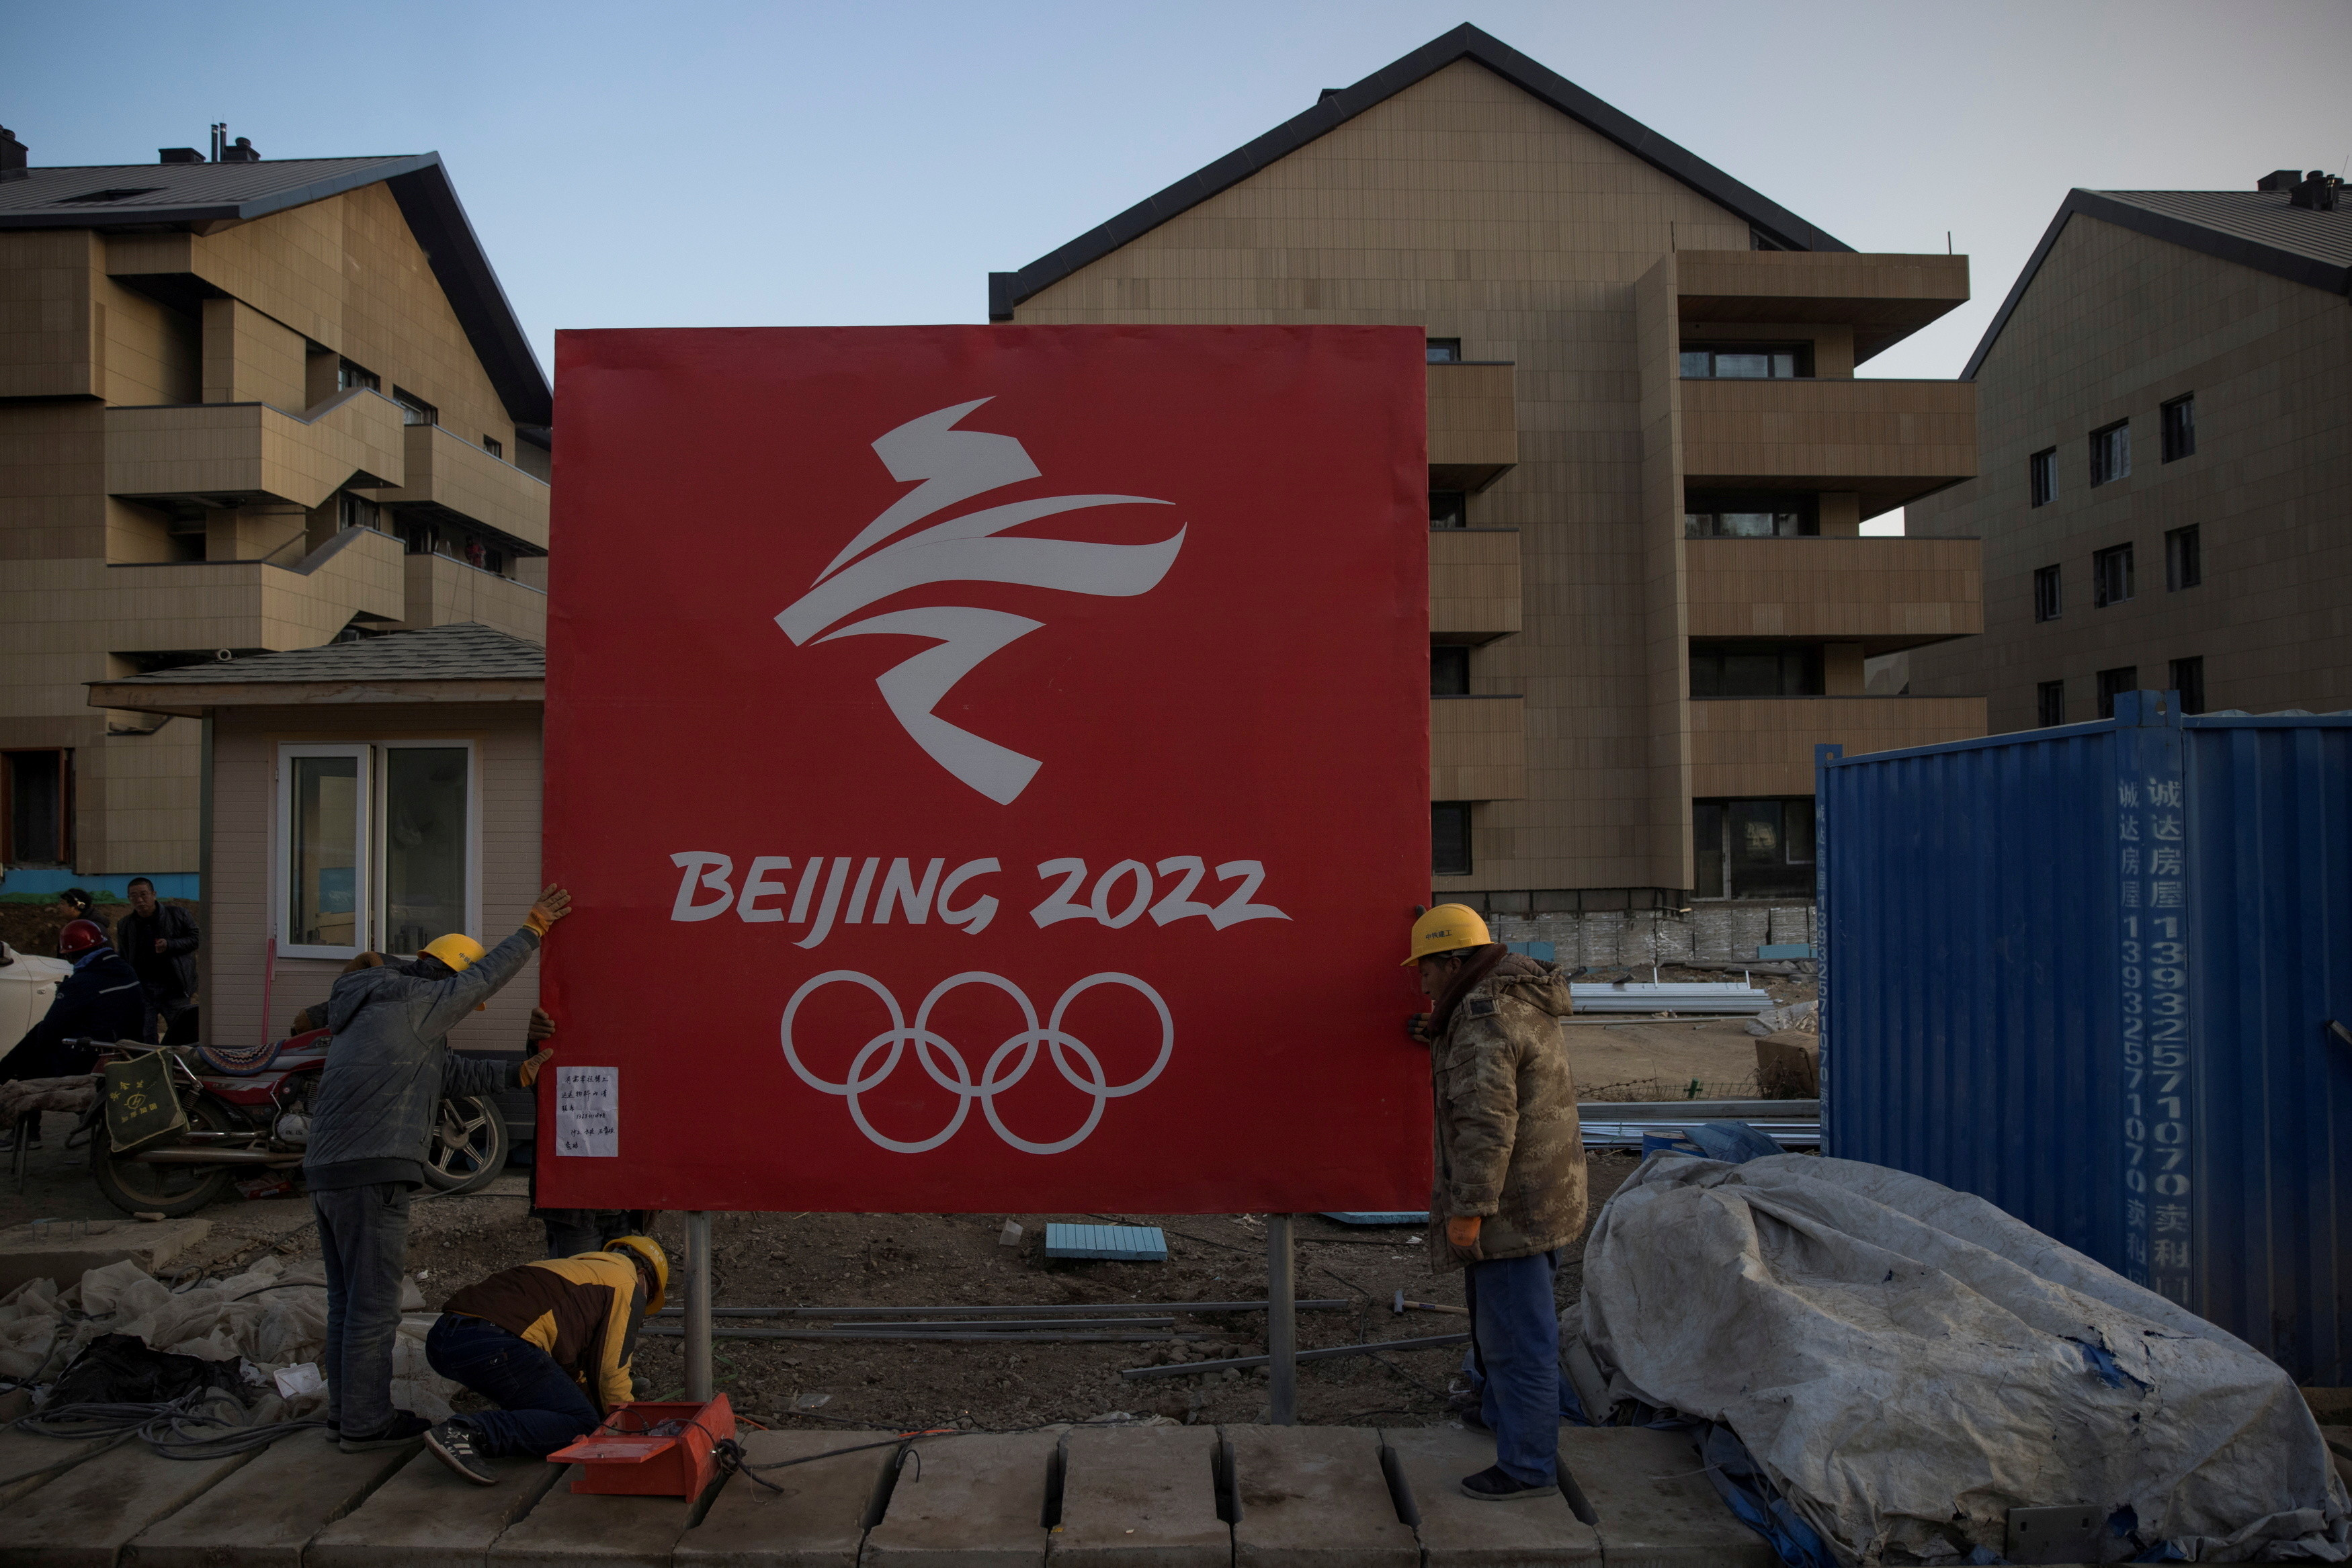 Workers move a sign at the Olympic Village for the 2022 Winter Olympics in the Chongli district of Zhangjiakou, Hebei province, China, October 29, 2020.